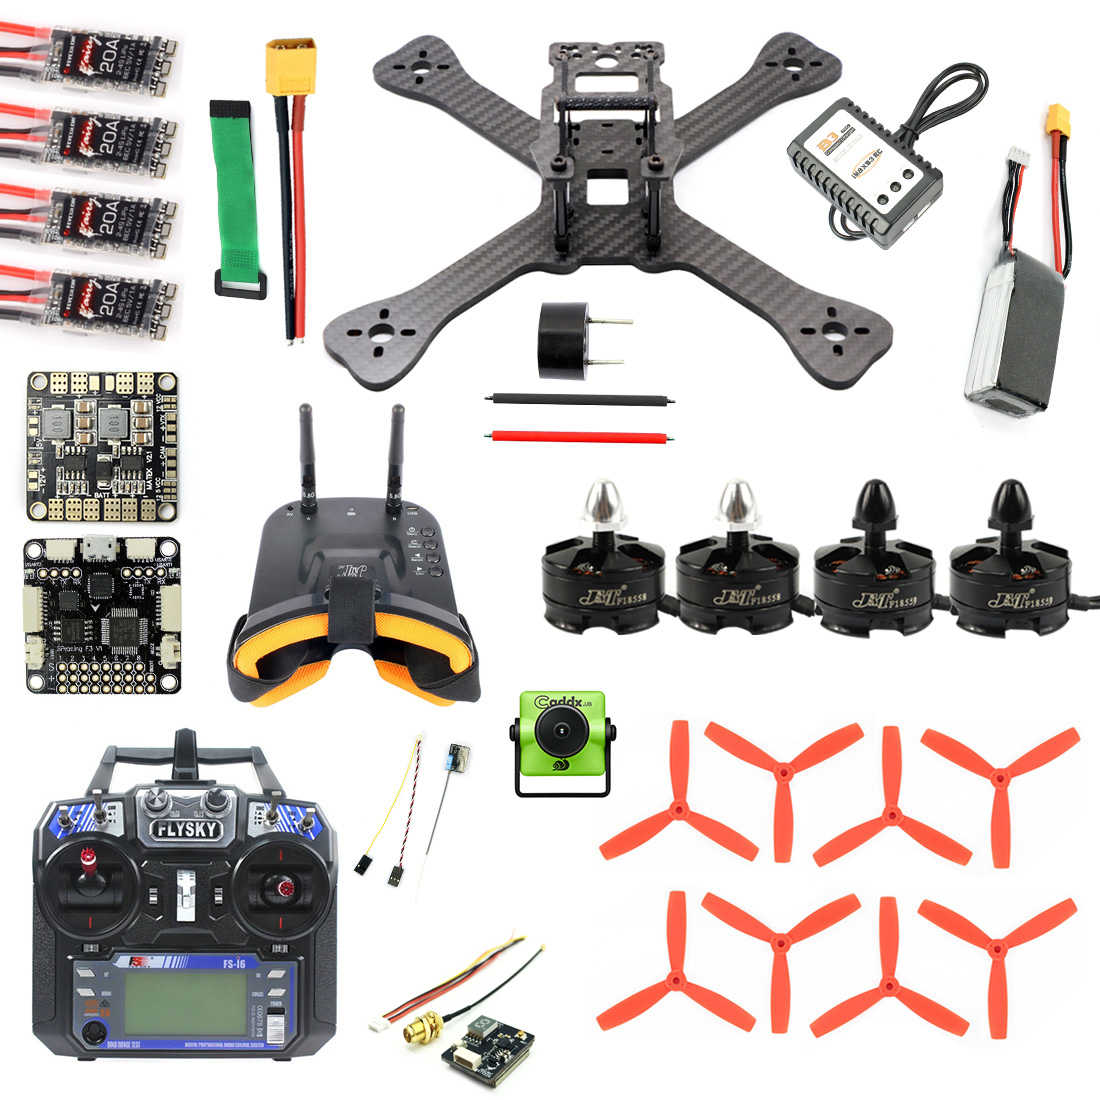 DIY TX5-210 210mm 2,4G RC Drone Quadcopter Mini SP F3 Caddx Turbo S1 noche versión Cámara 5,8G VTX Monitor FPV gafas